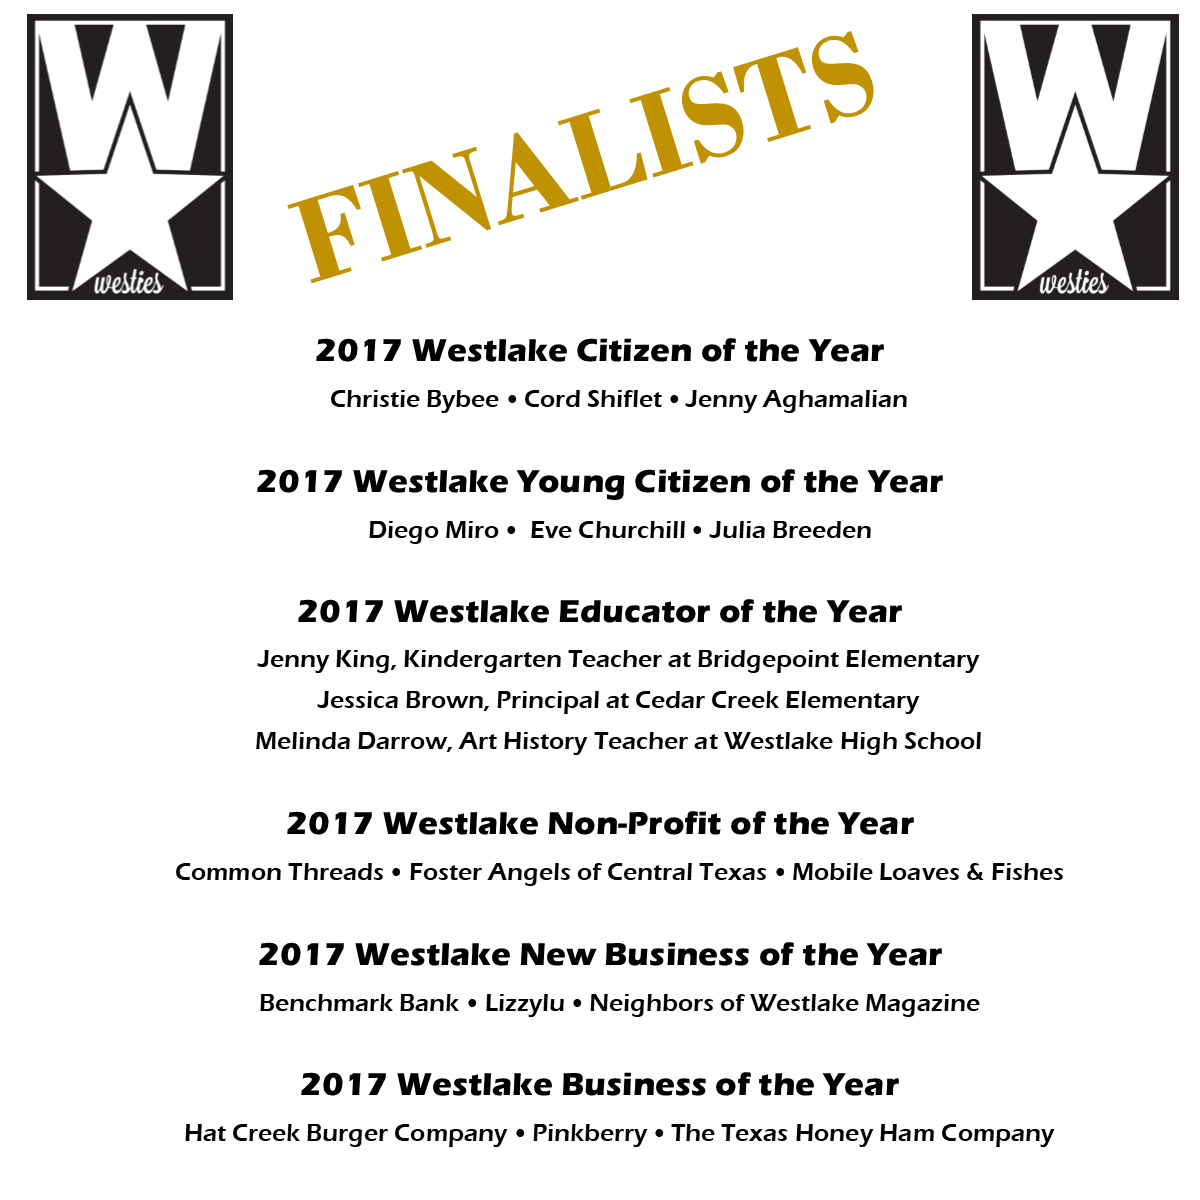 Westies Finalists Best of 2017